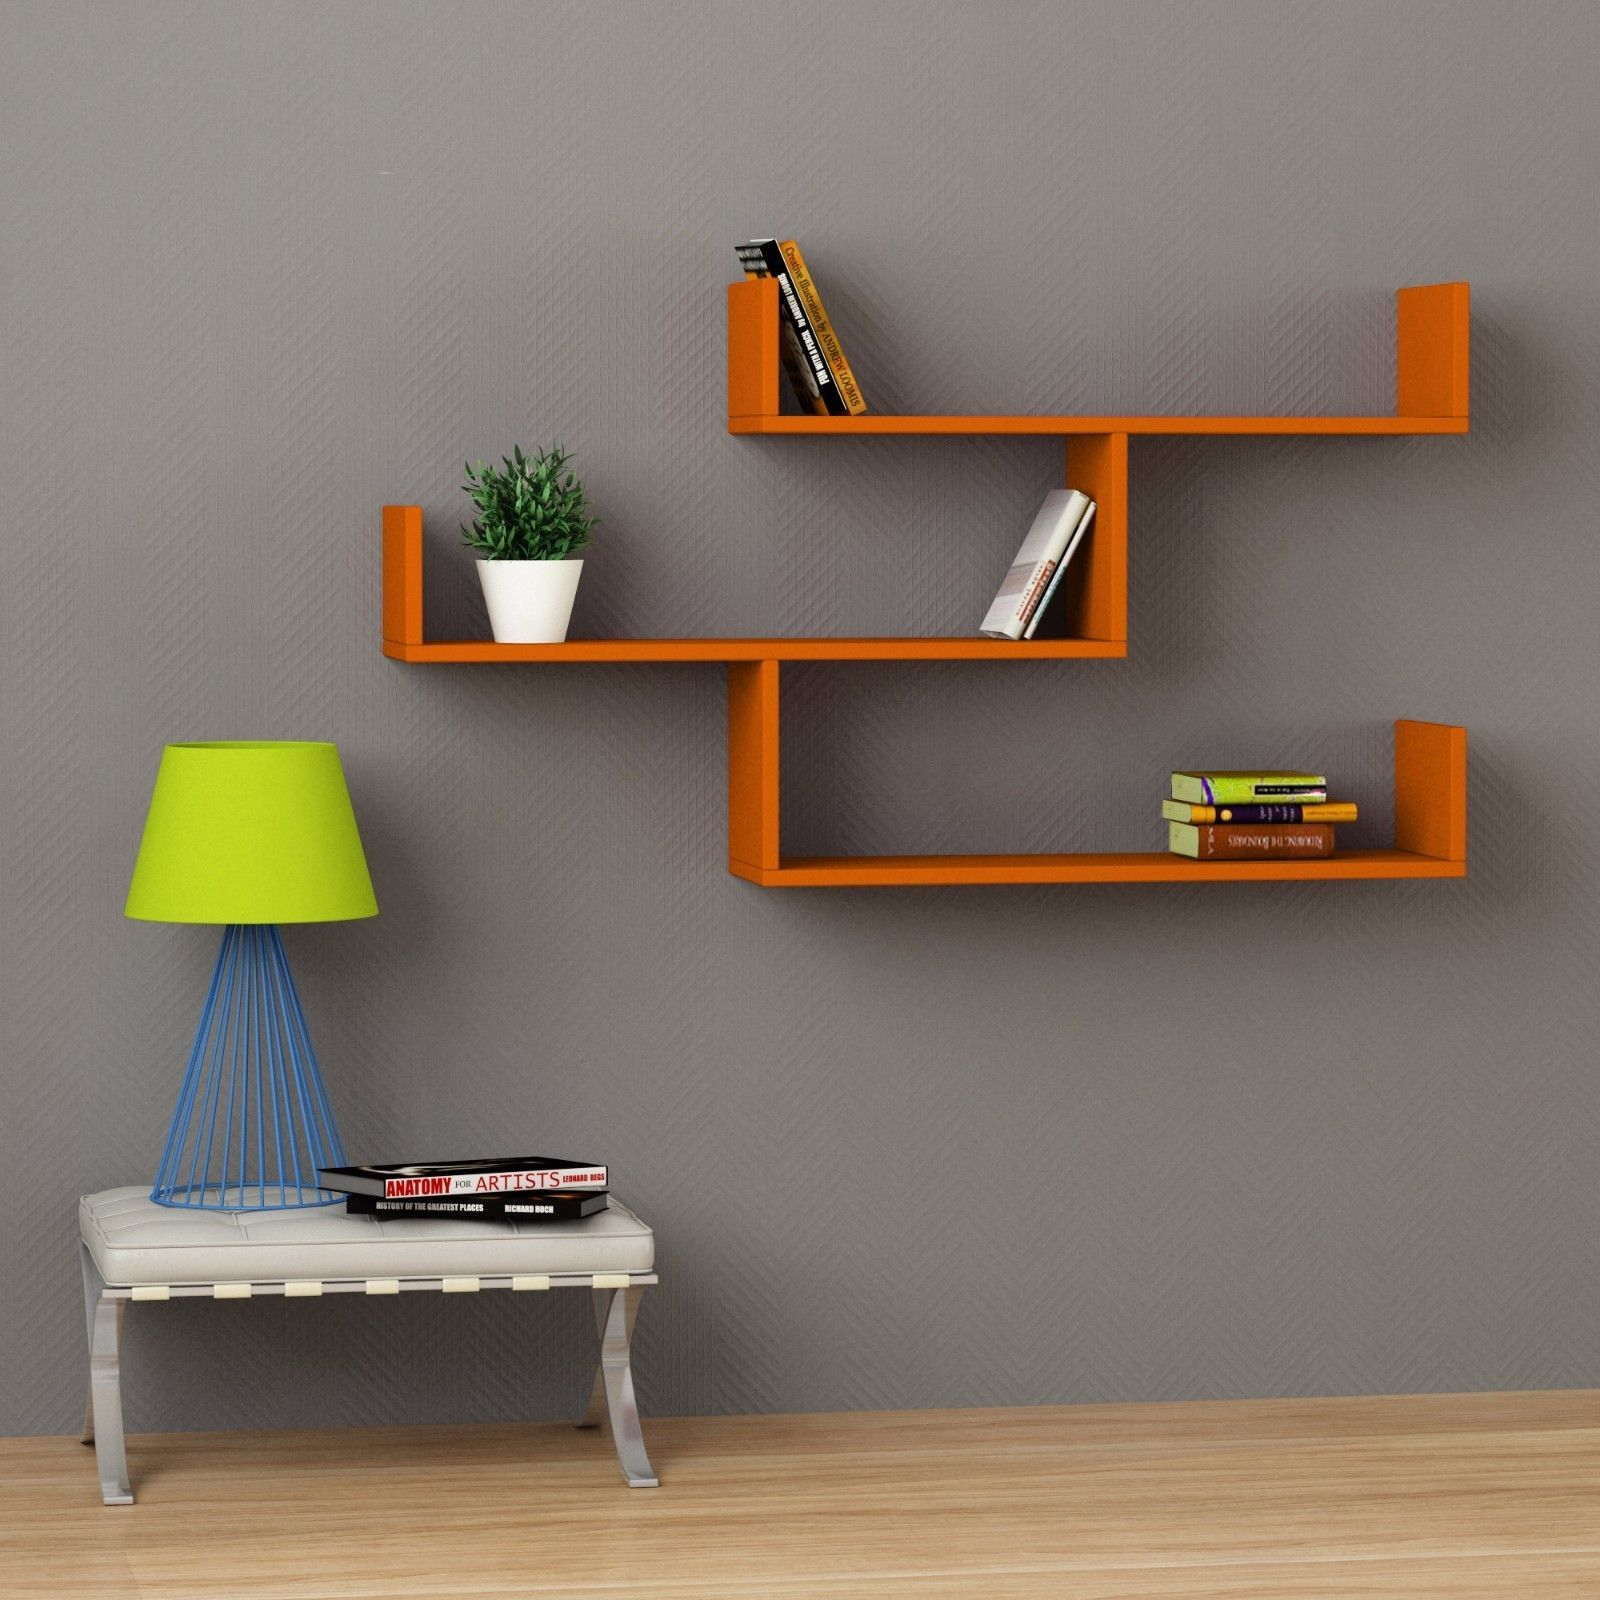 Wall Shelf Design Tibet Contemporary Modern Design Unique Wall Shelf By Decortie